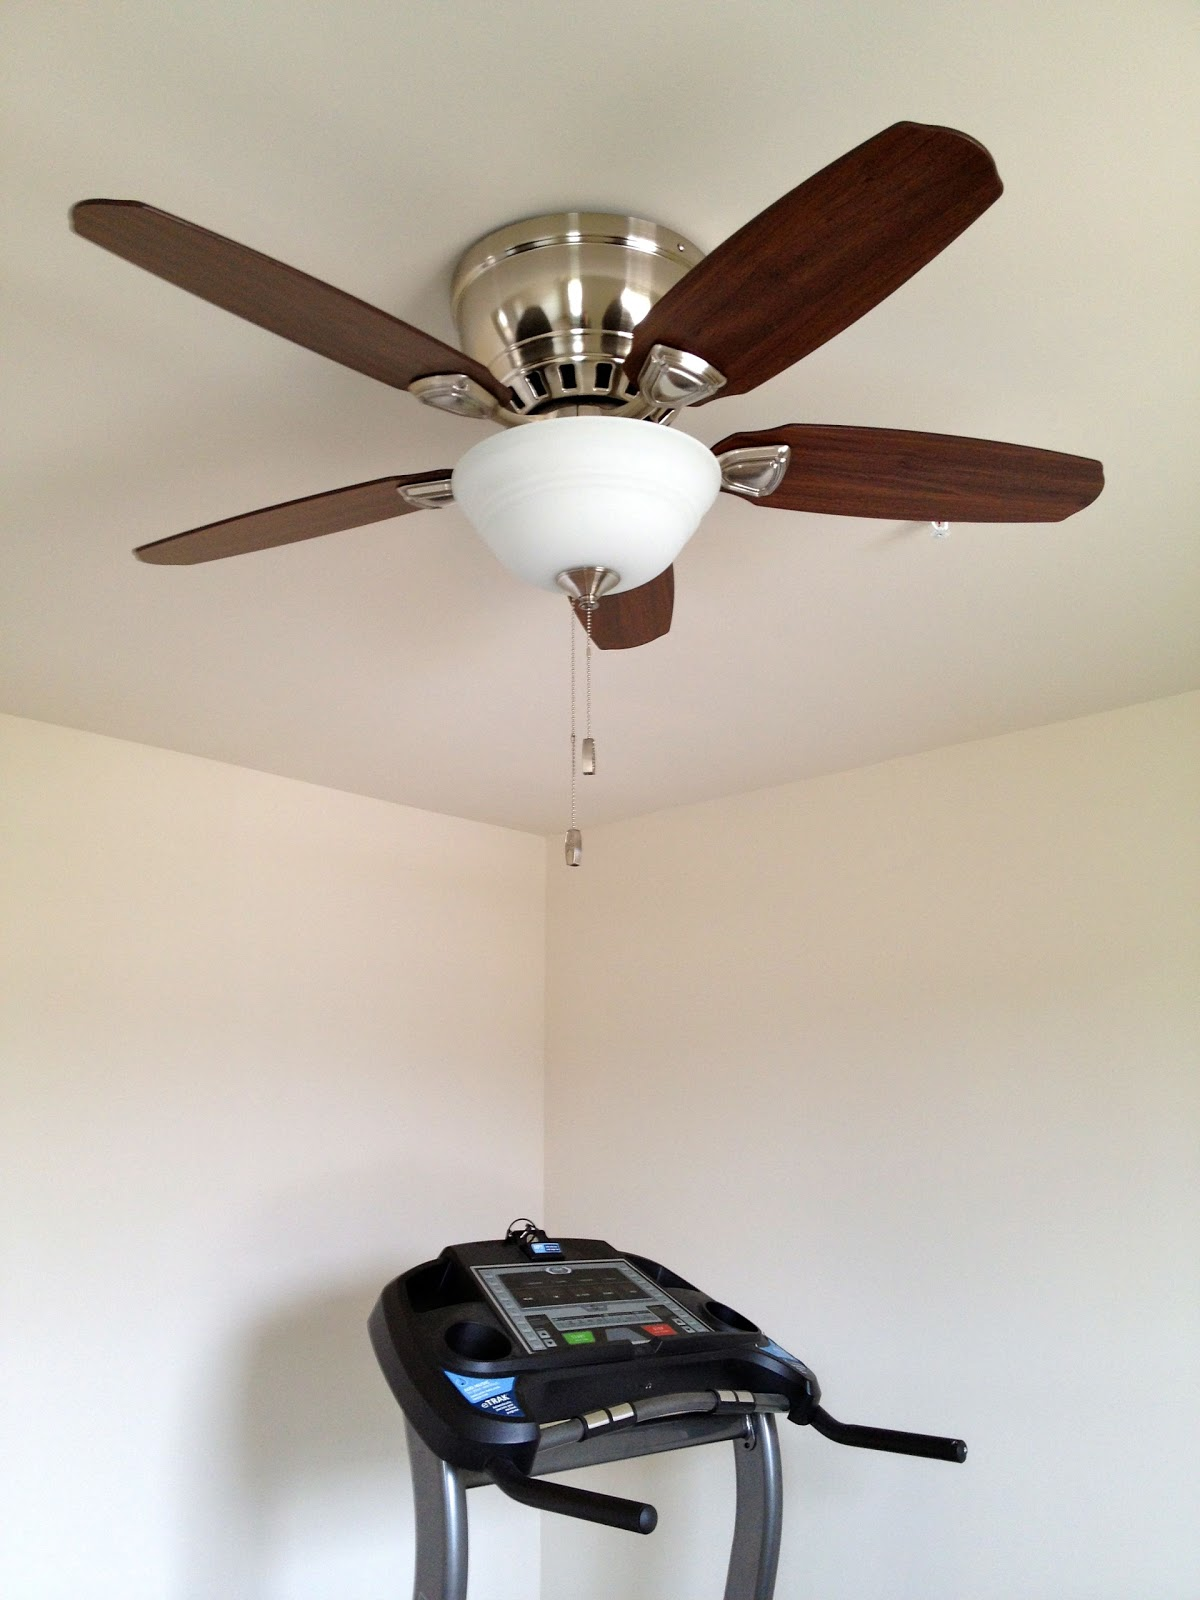 Ceiling fans and chandelier installed